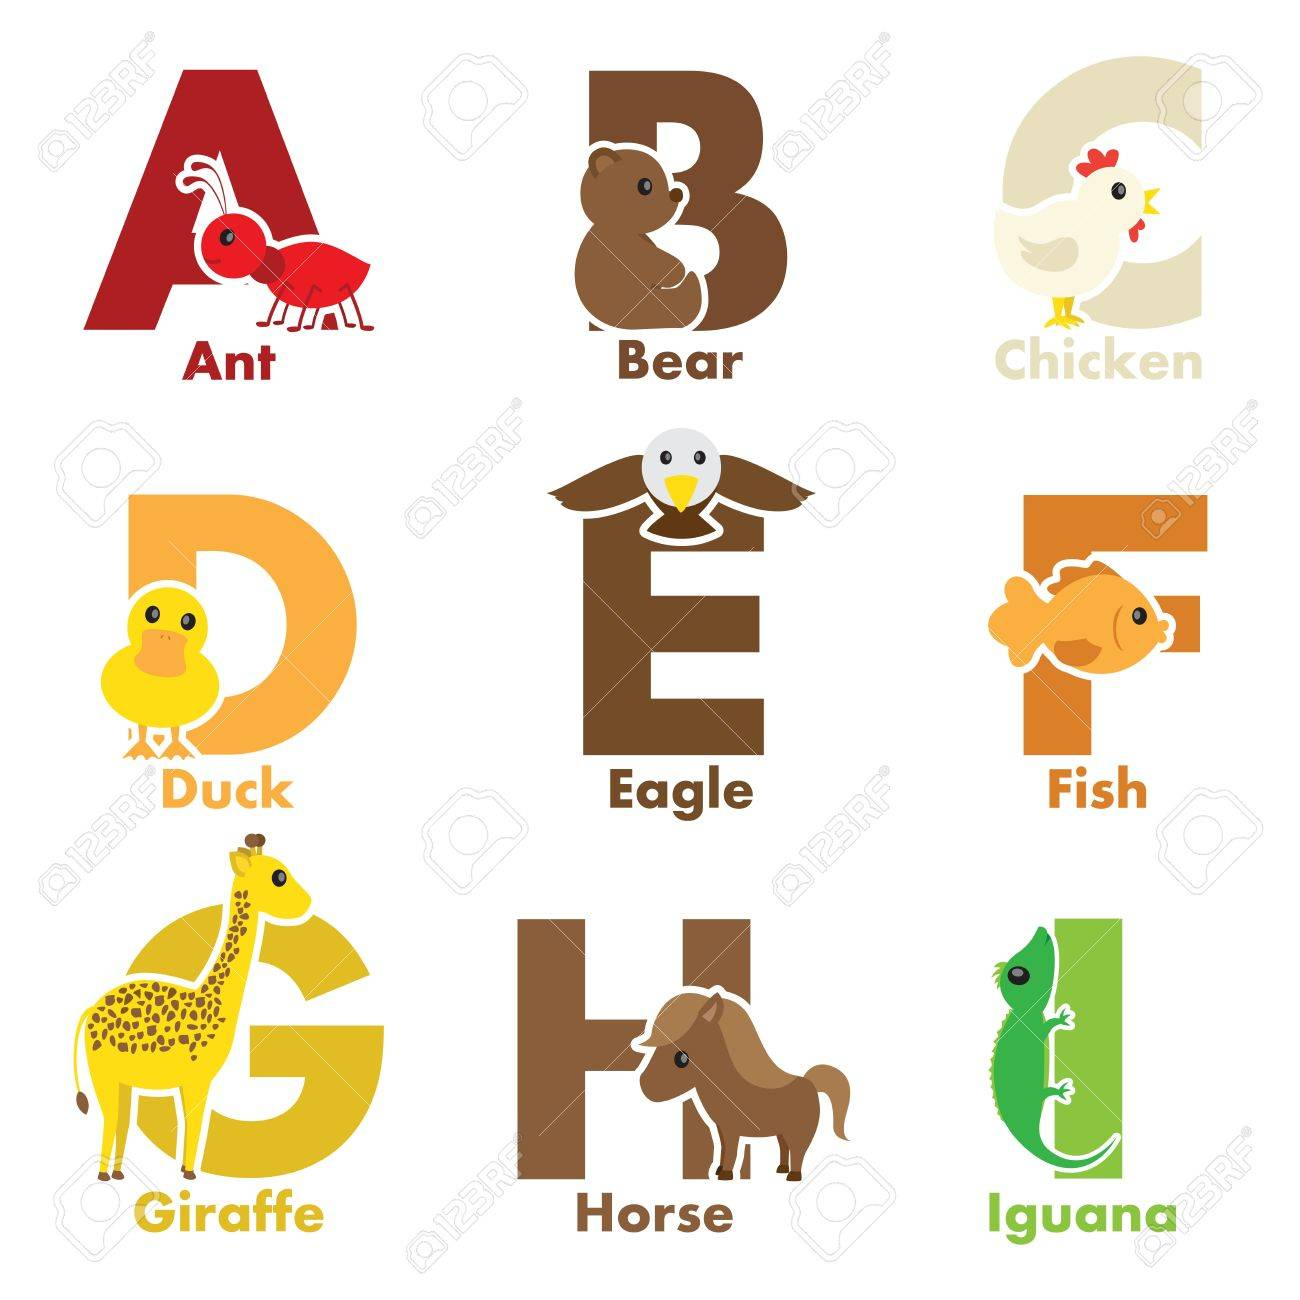 a illustration of alphabet animals from a to i royalty free